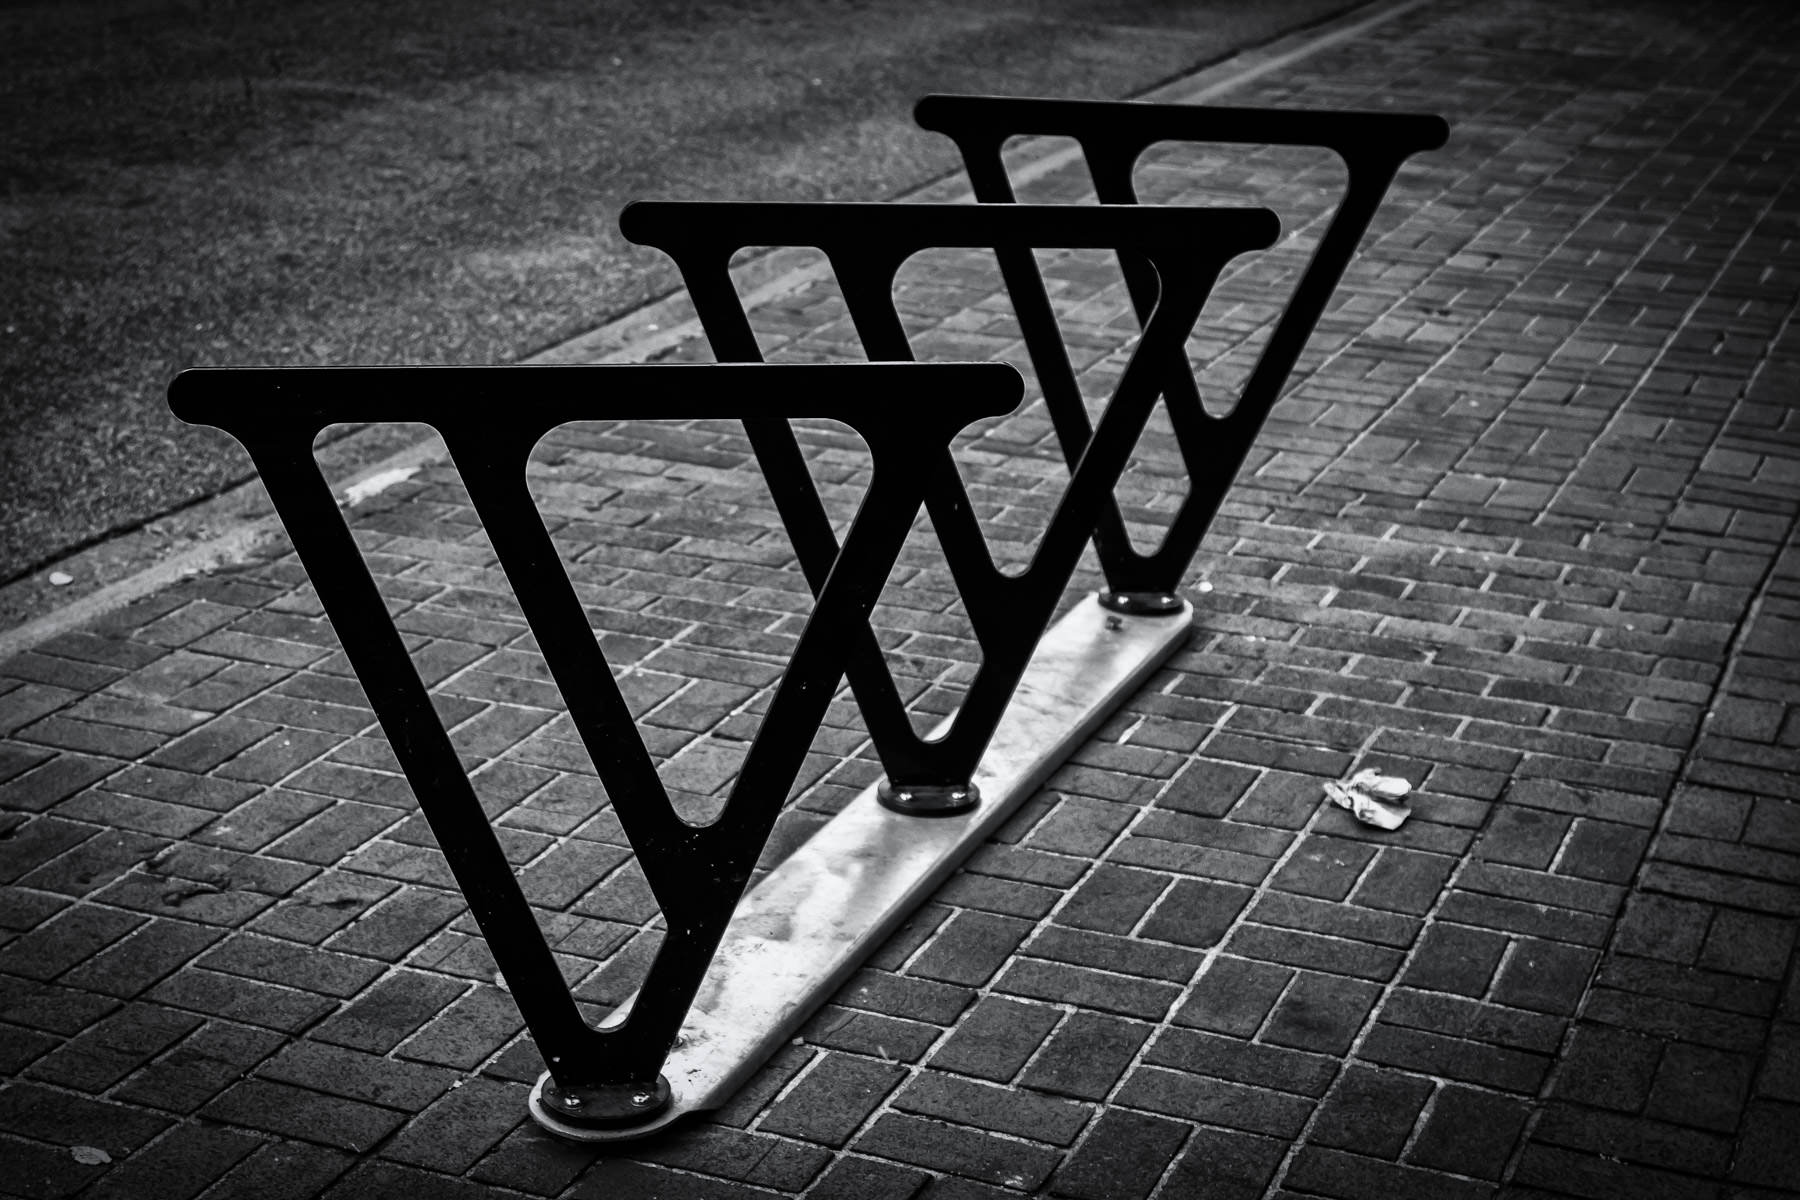 The unique, V-shaped bike racks of Victoria, British Columbia.